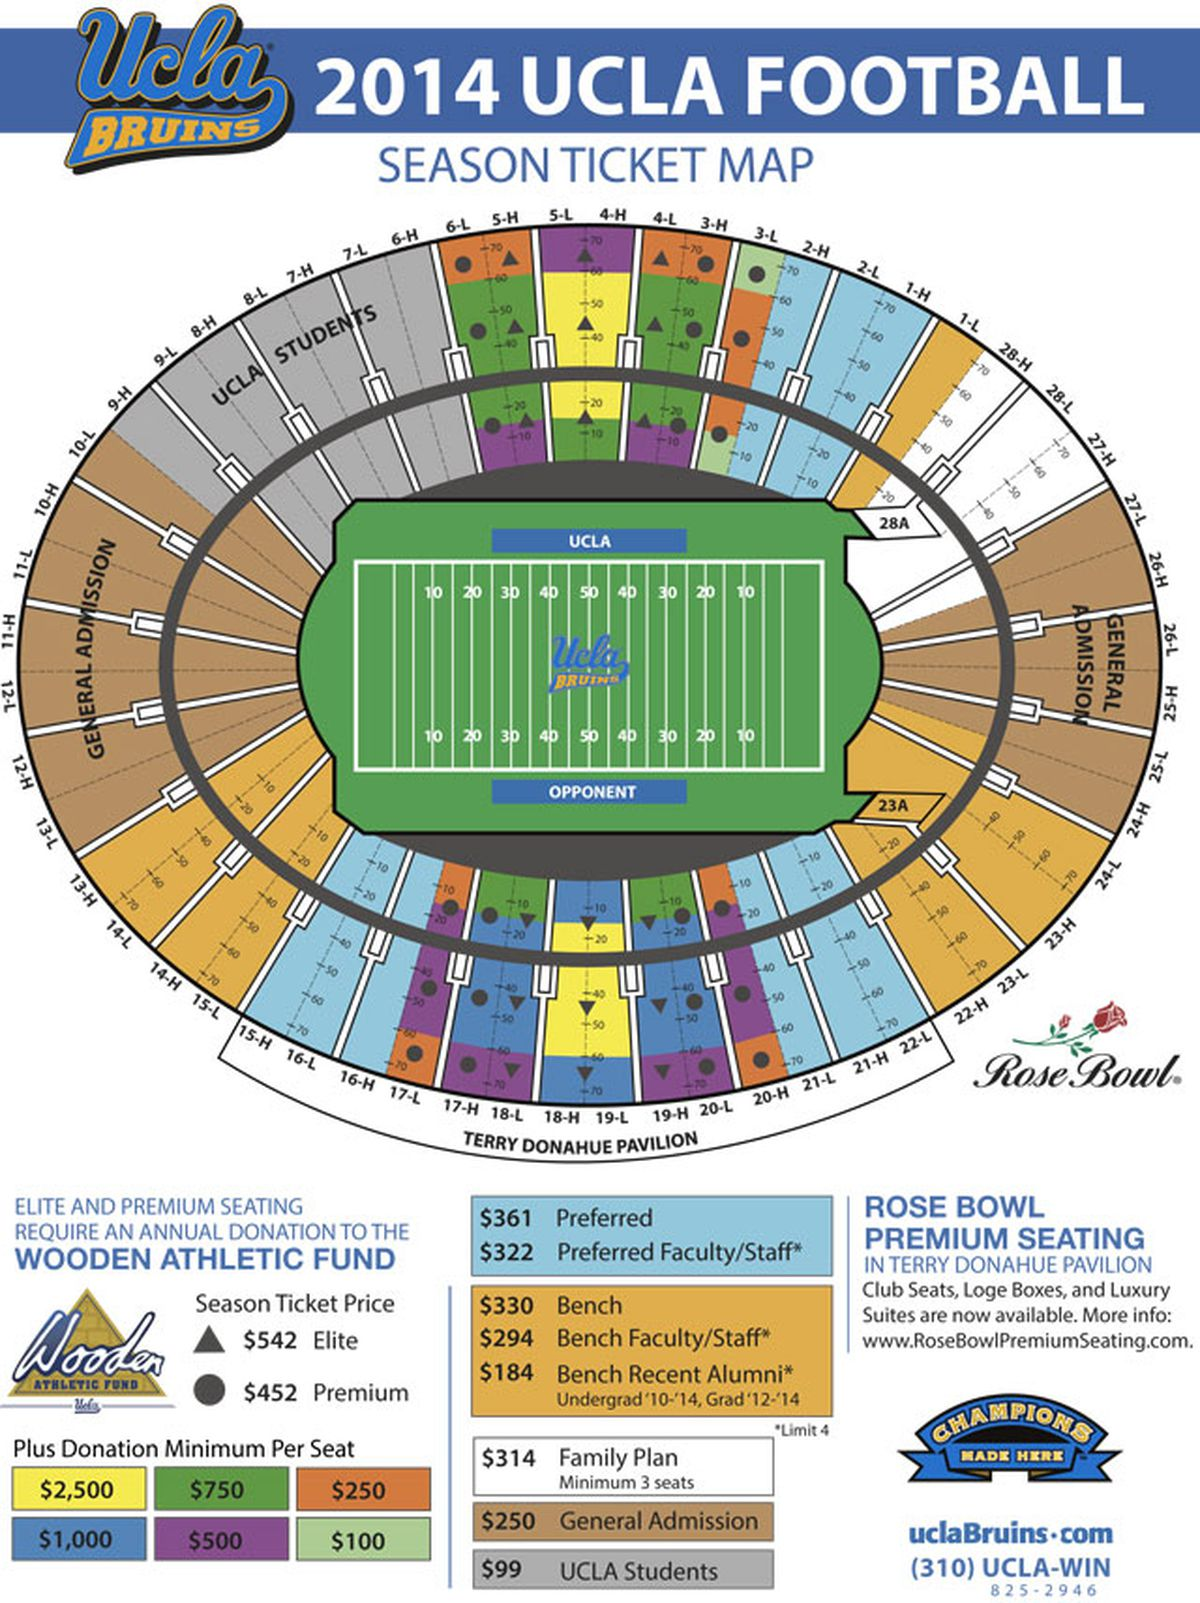 ucla announces big changes to rose bowl seating for 2016 bruins nation. Black Bedroom Furniture Sets. Home Design Ideas